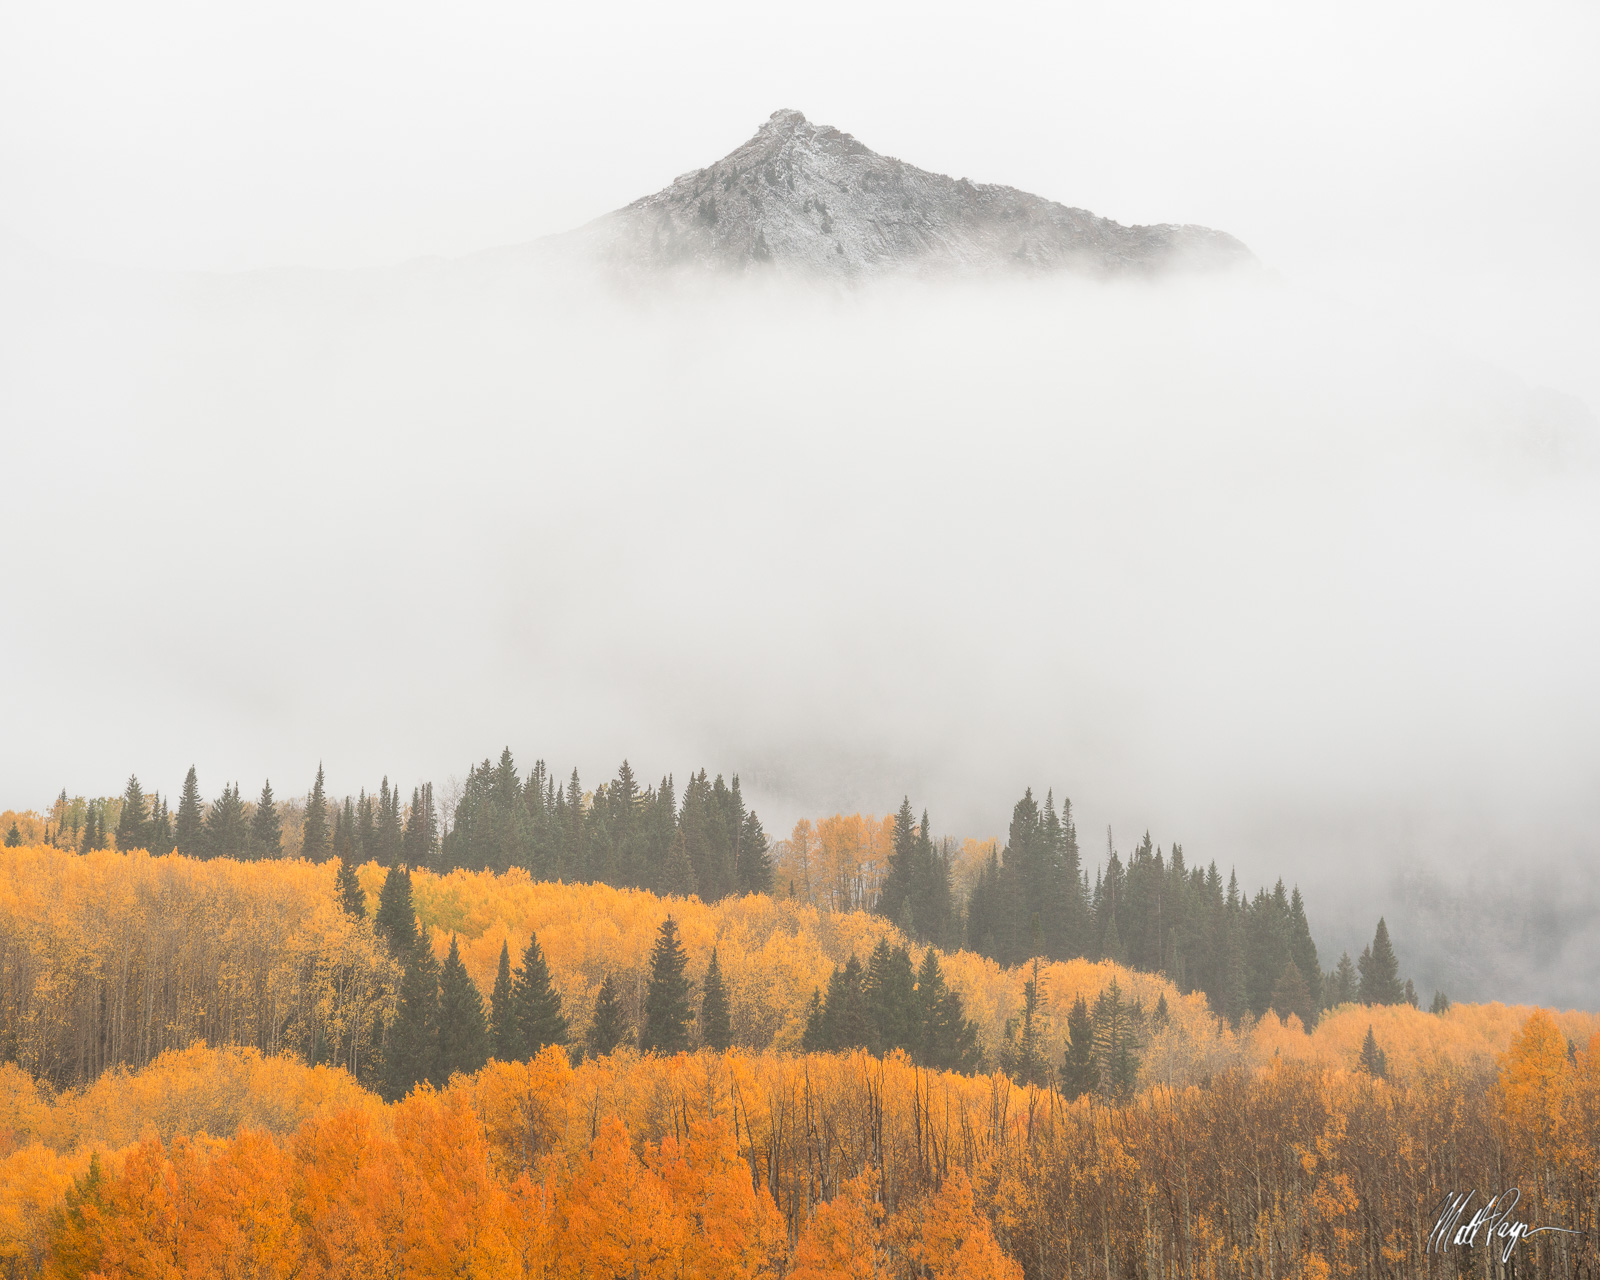 Autumn, Colorado, Fall, Fall Colors, Fog, Landscape, Moody, storm, East Beckwith, mountain, drama, photo